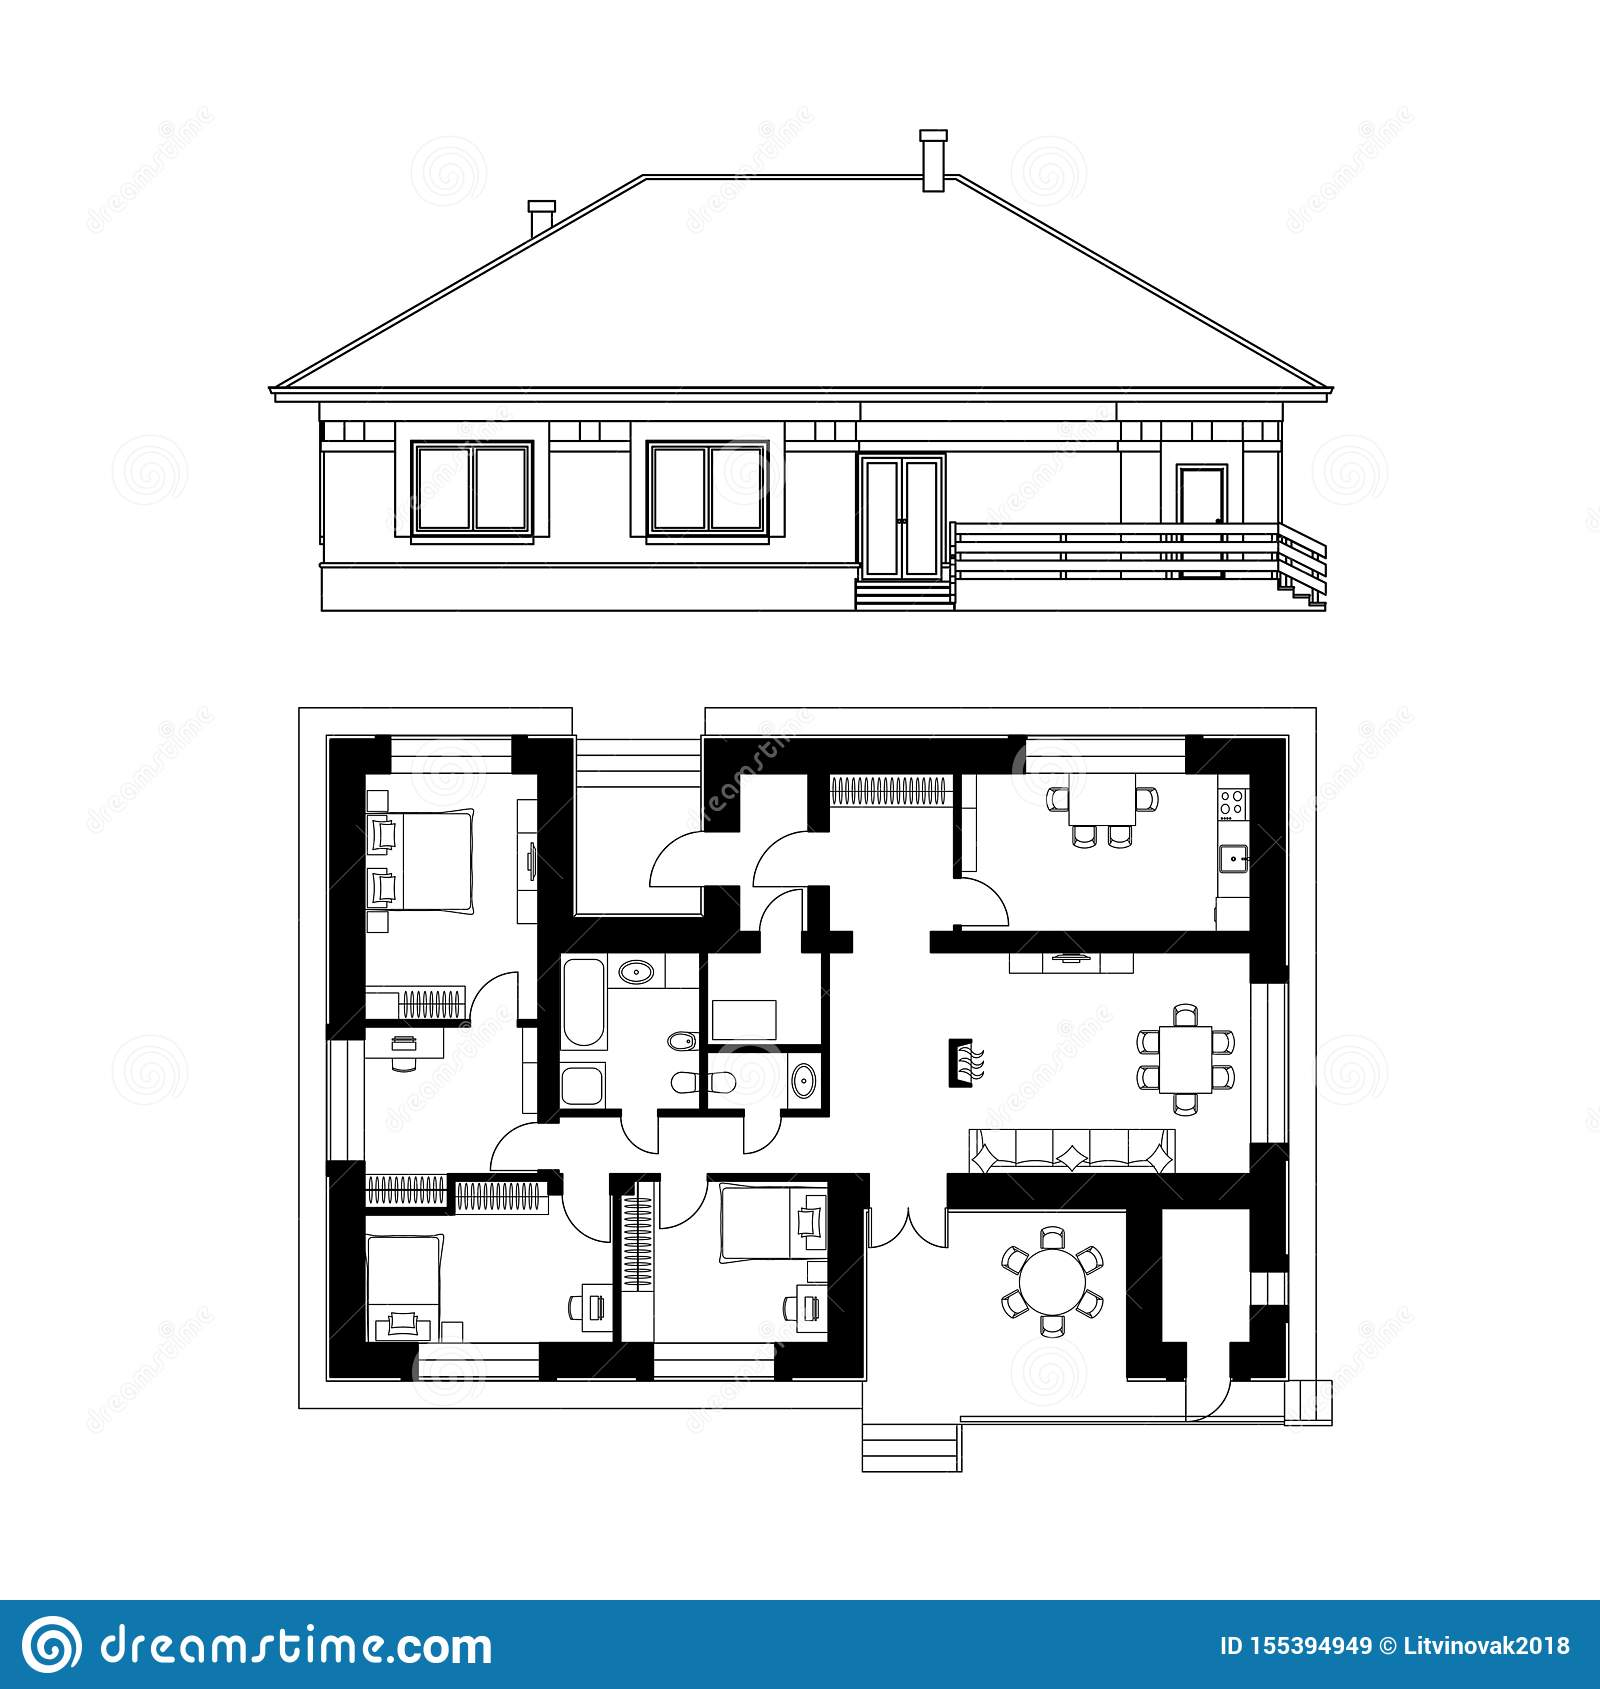 Architectural Project Of A House Drawing Of The Facade And Floor Plan Of The Cottage Vector Realistic Illustration Stock Vector Illustration Of Exterior Building 155394949